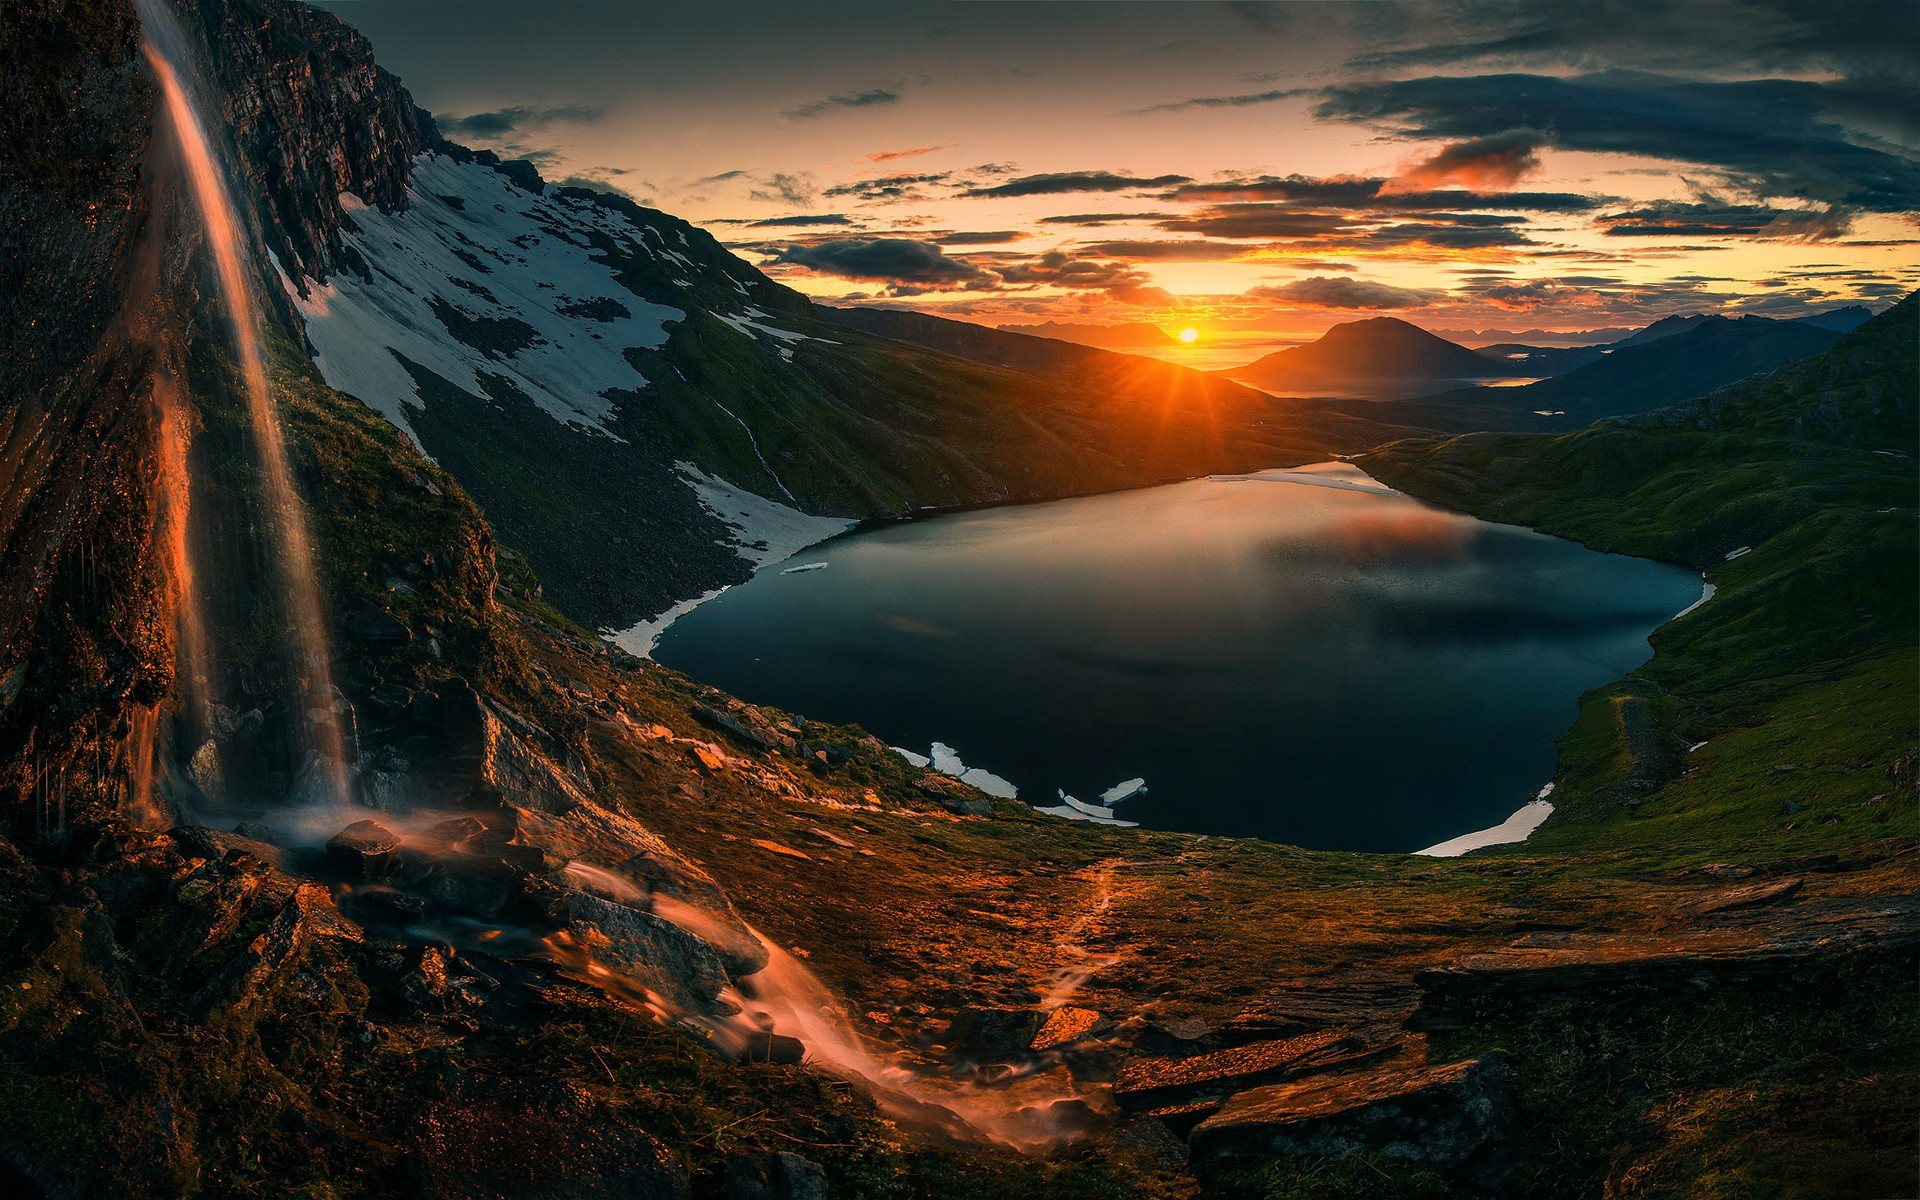 3d Wallpaper 800x1280 Sunset Over Mountains Hd Nature 4k Wallpapers Images